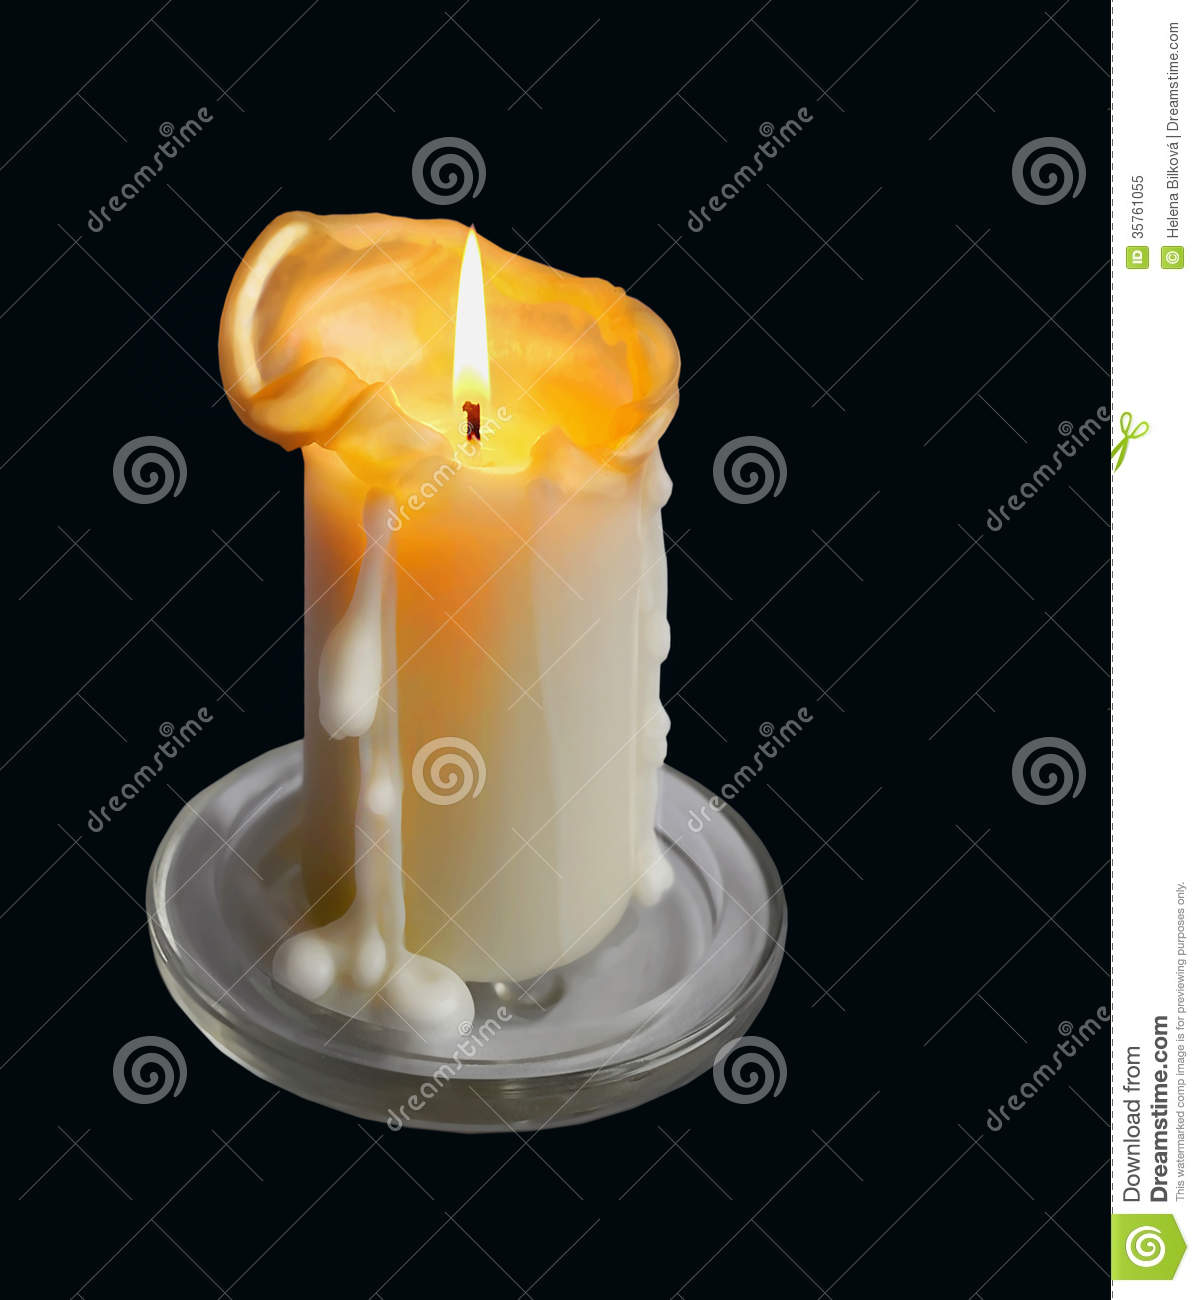 Dripping Candle Candle with wax drippingDripping Candle Drawing